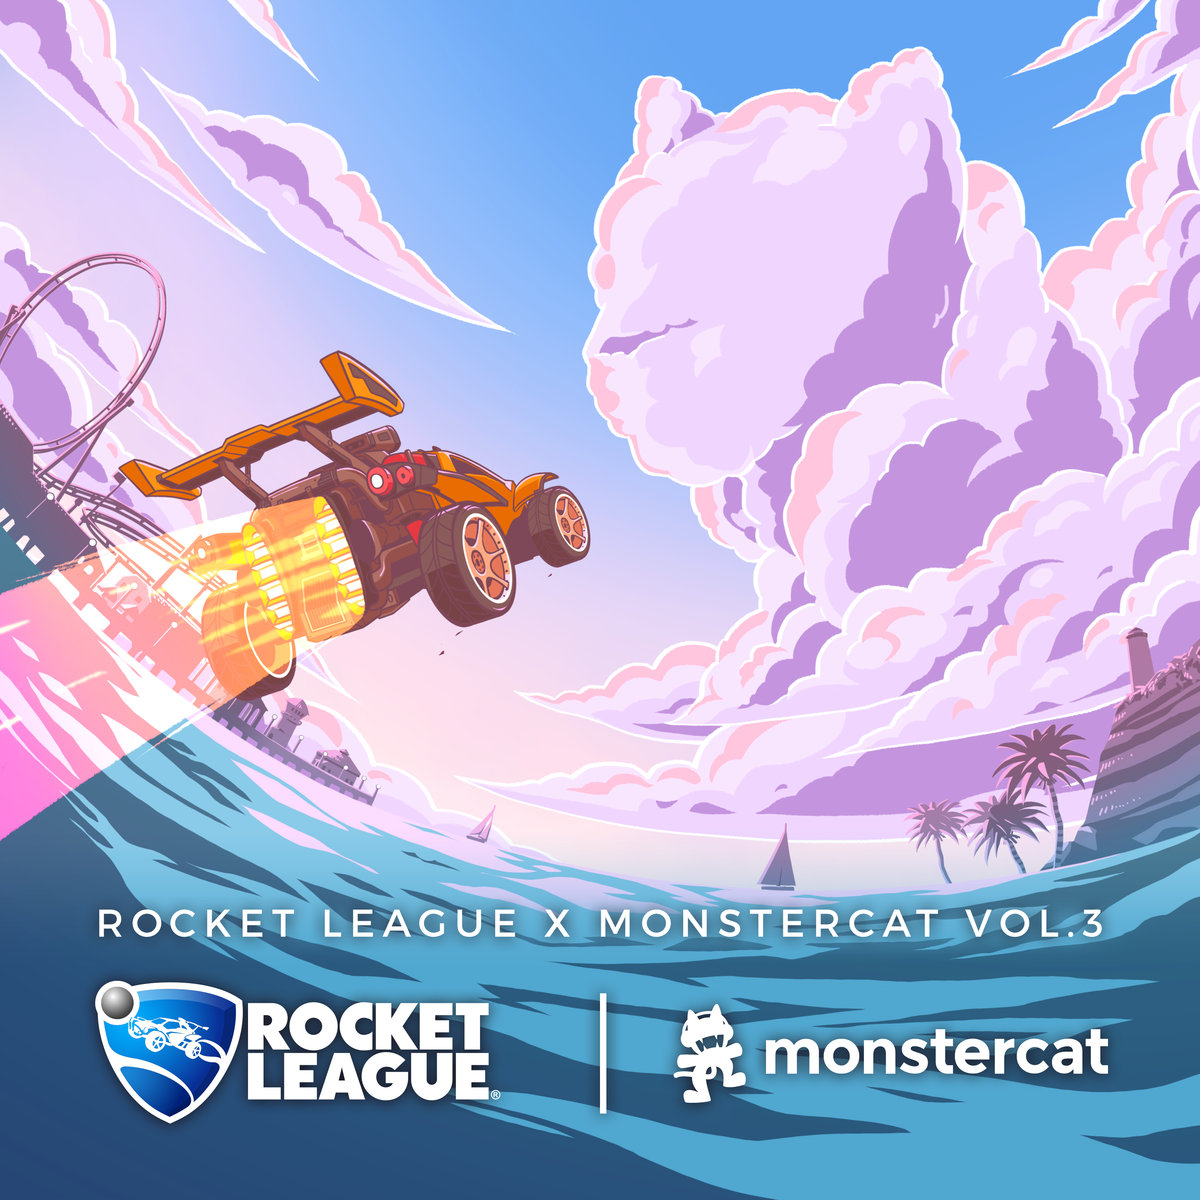 Rocket League x Monstercat Vol. 3